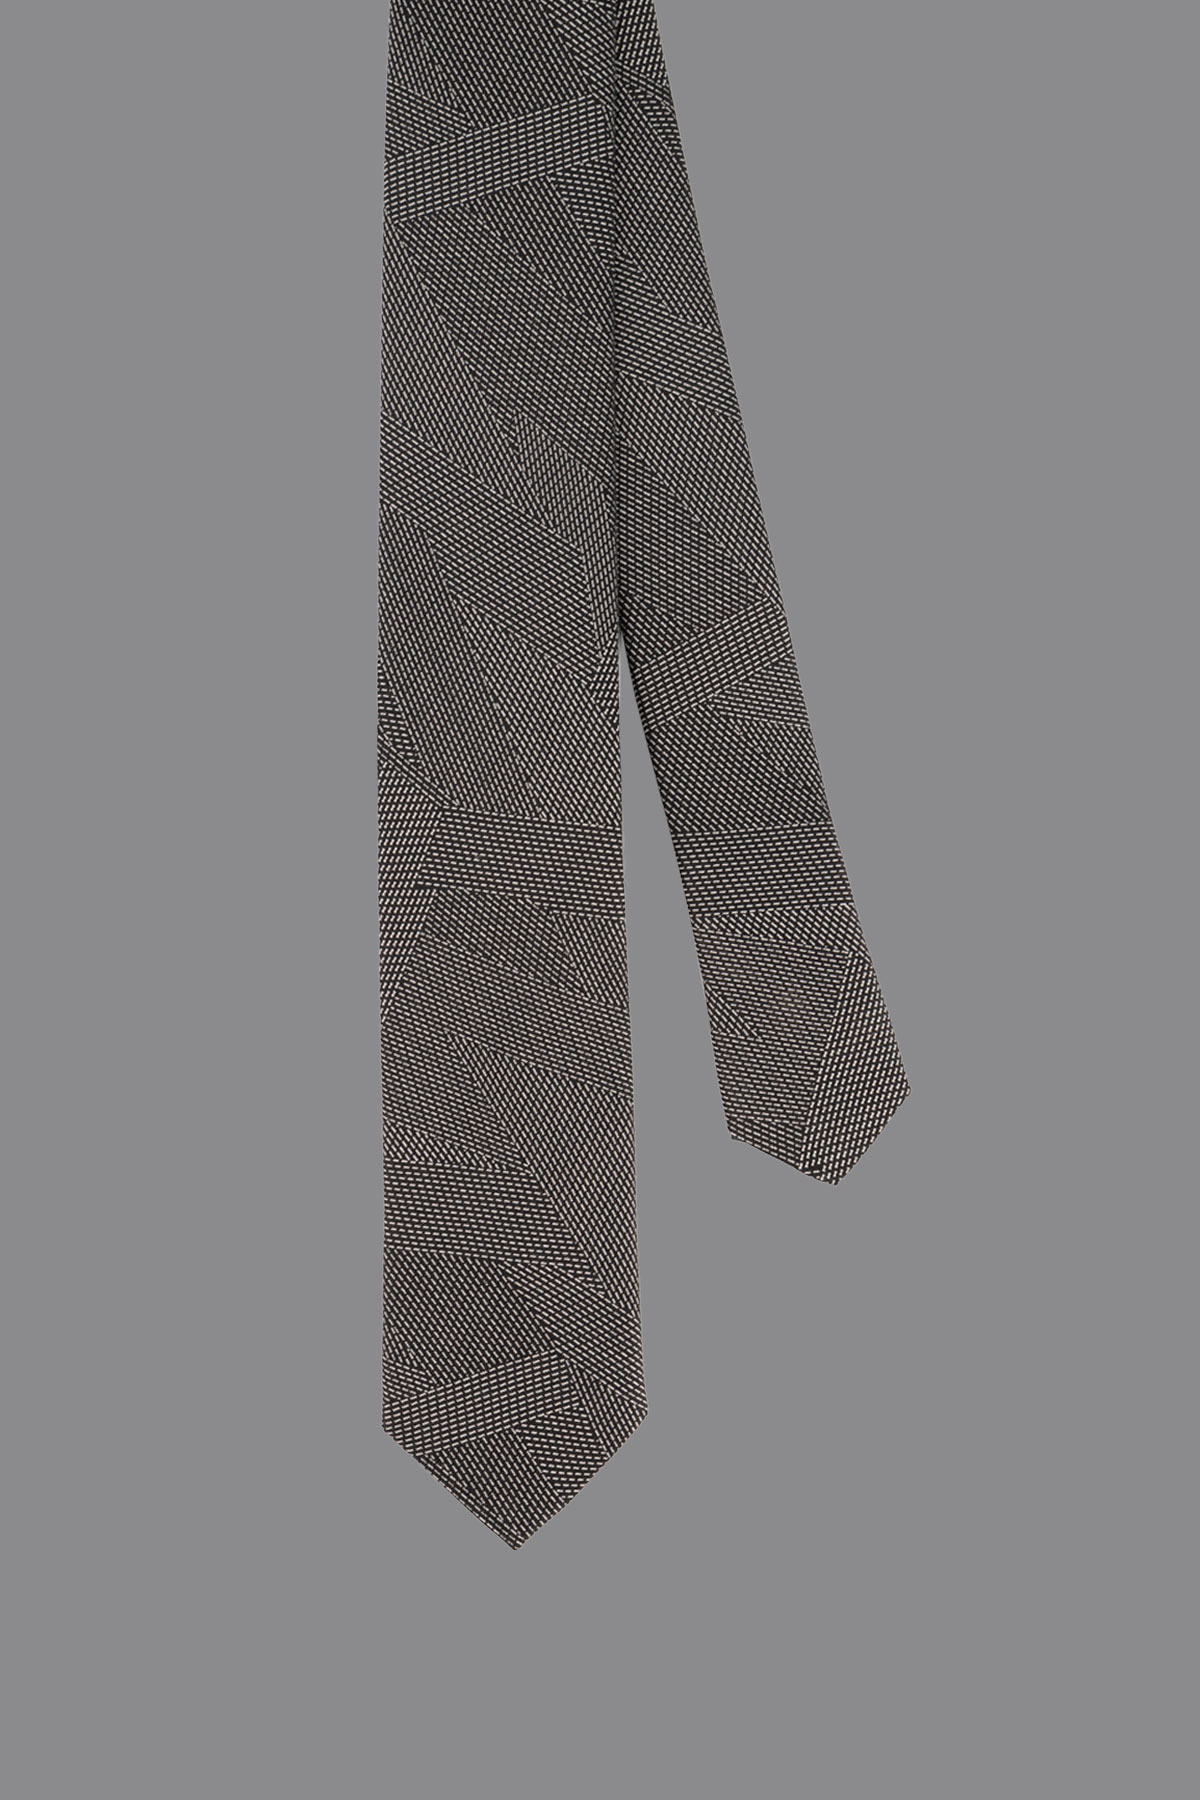 Corbata HUGO BOSS color Café